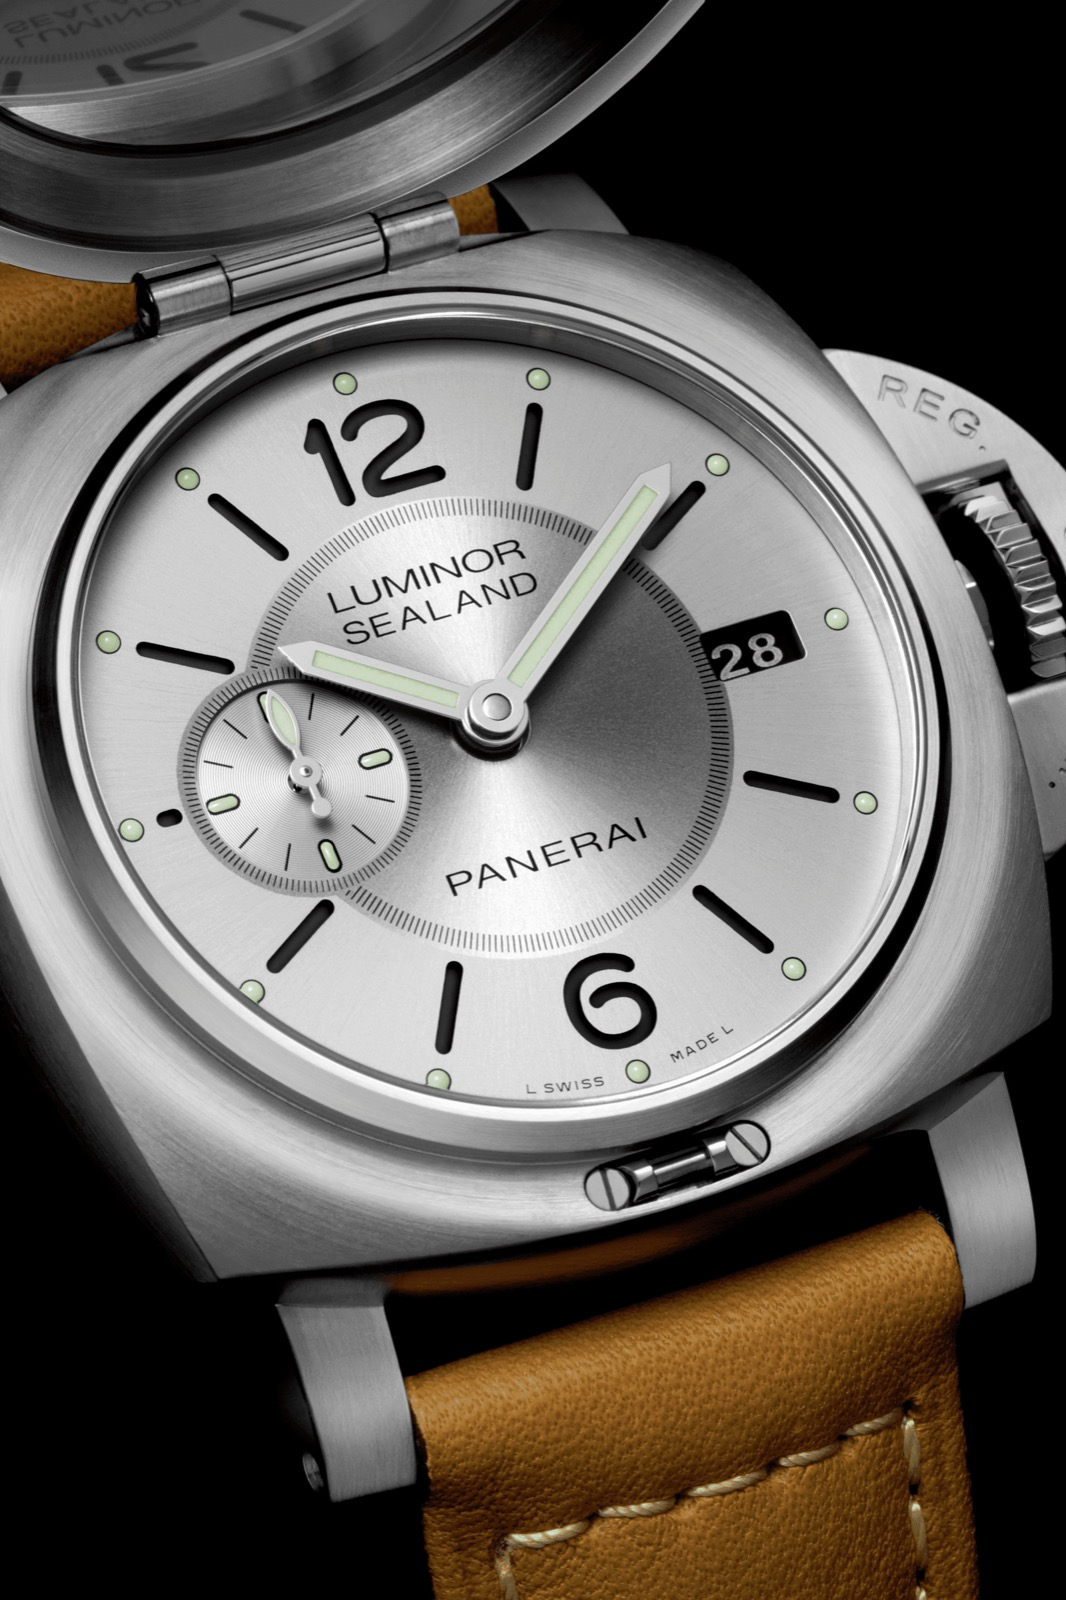 Panerai Luminor Sealand Year of The Rat